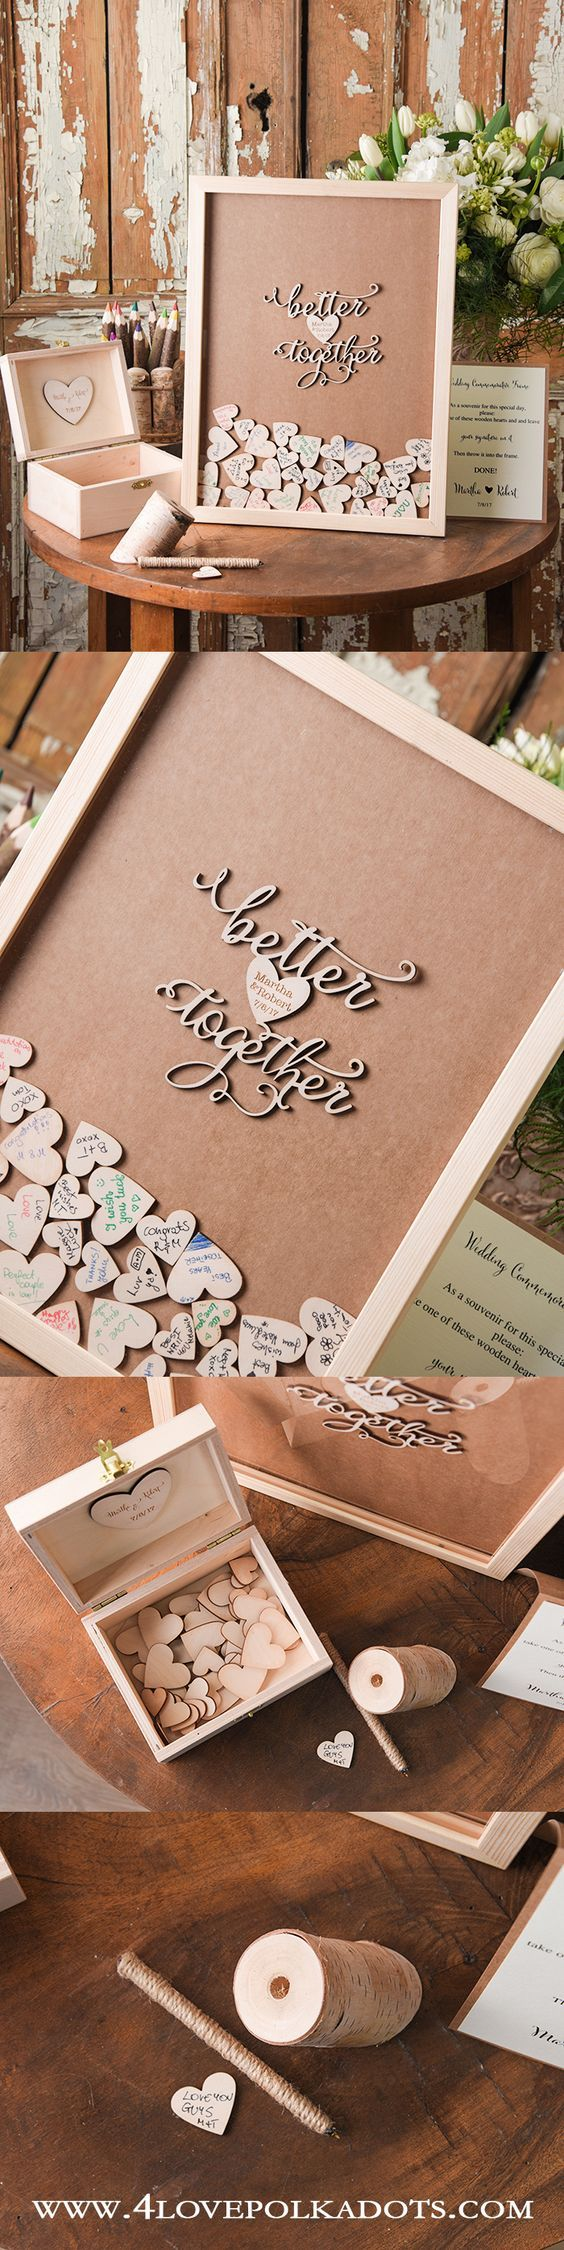 Alternative Wedding Guest Book || @4lovepolkadots